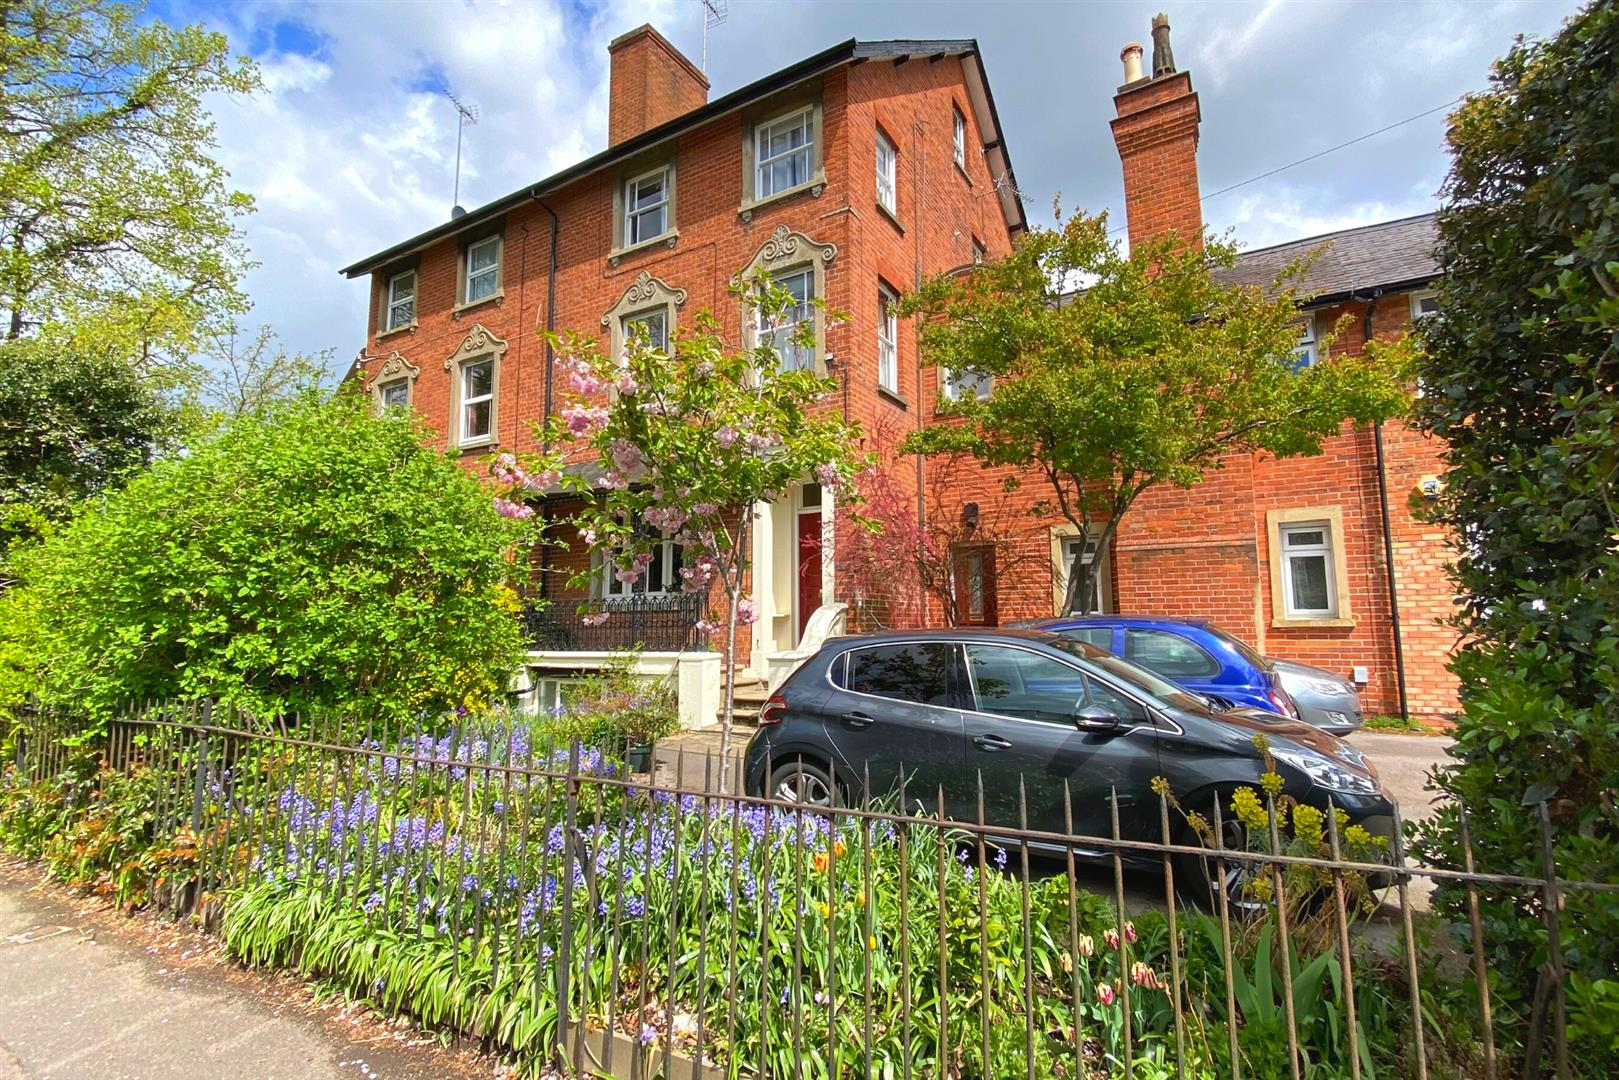 2 bed apartment for sale, RG1